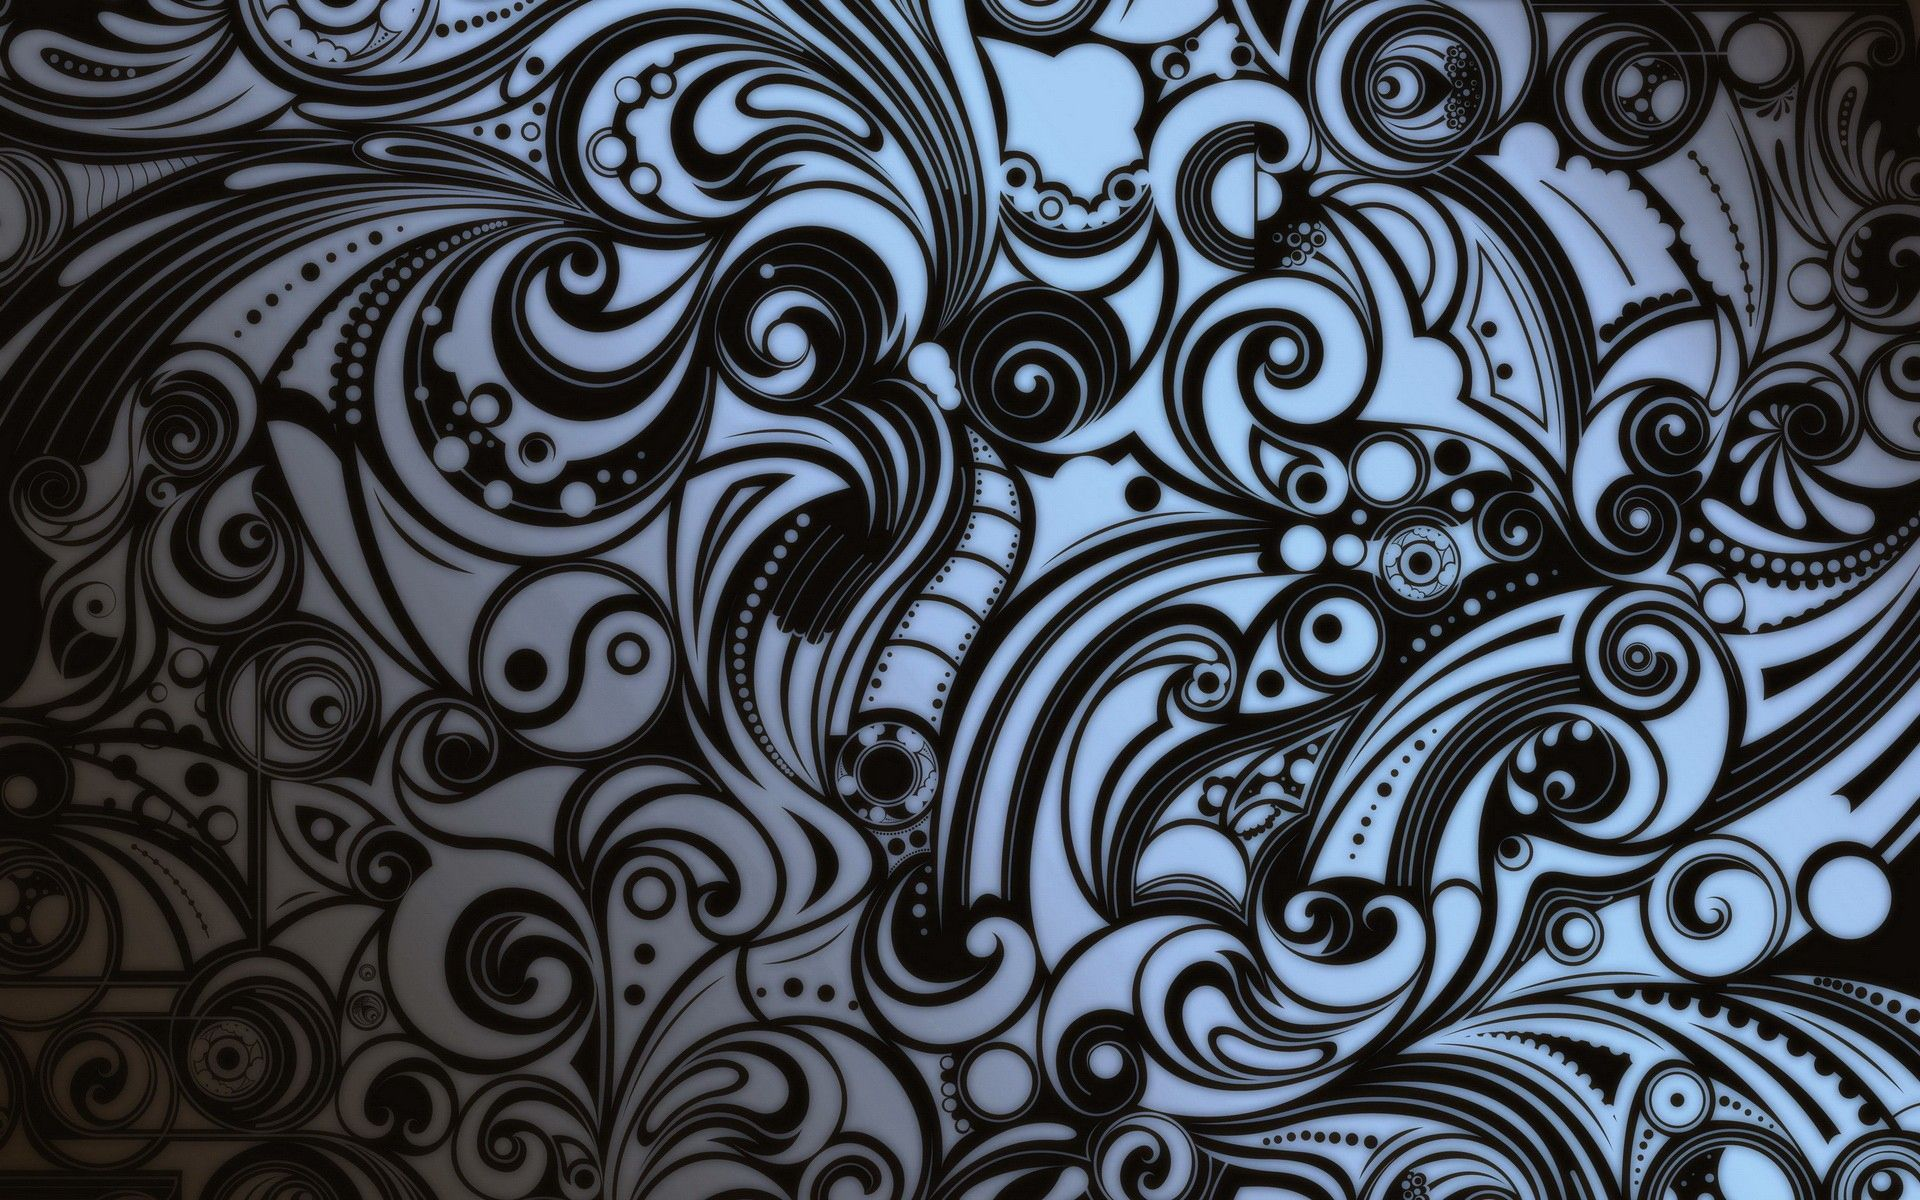 1920x1200 - Cool Tribal Backgrounds 4